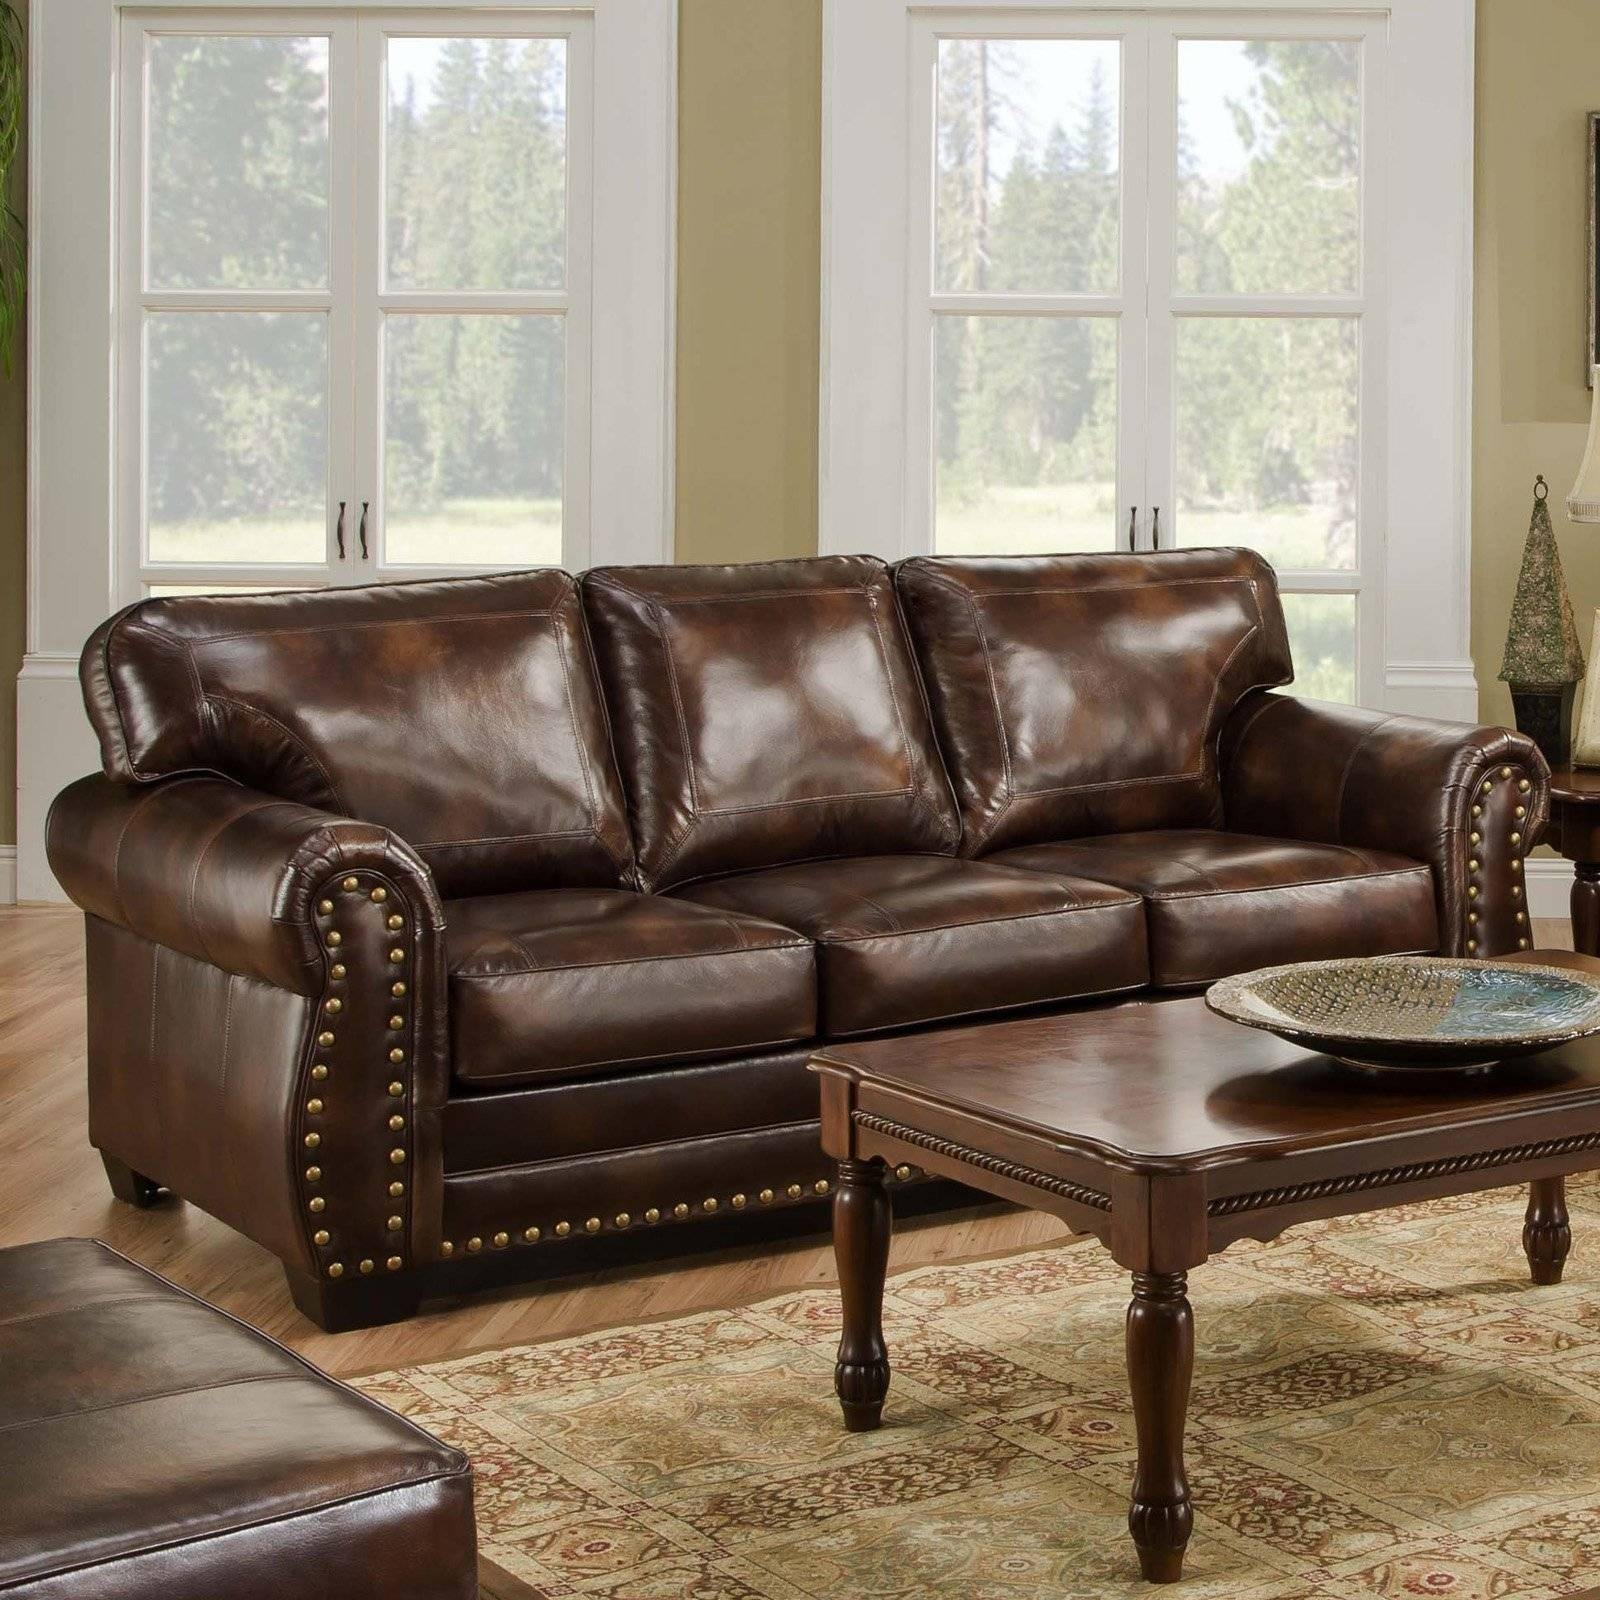 Simmons Vintage Encore Leather Sofa With Nail Heads | Hayneedle Within Simmons Leather Sofas And Loveseats (View 14 of 15)